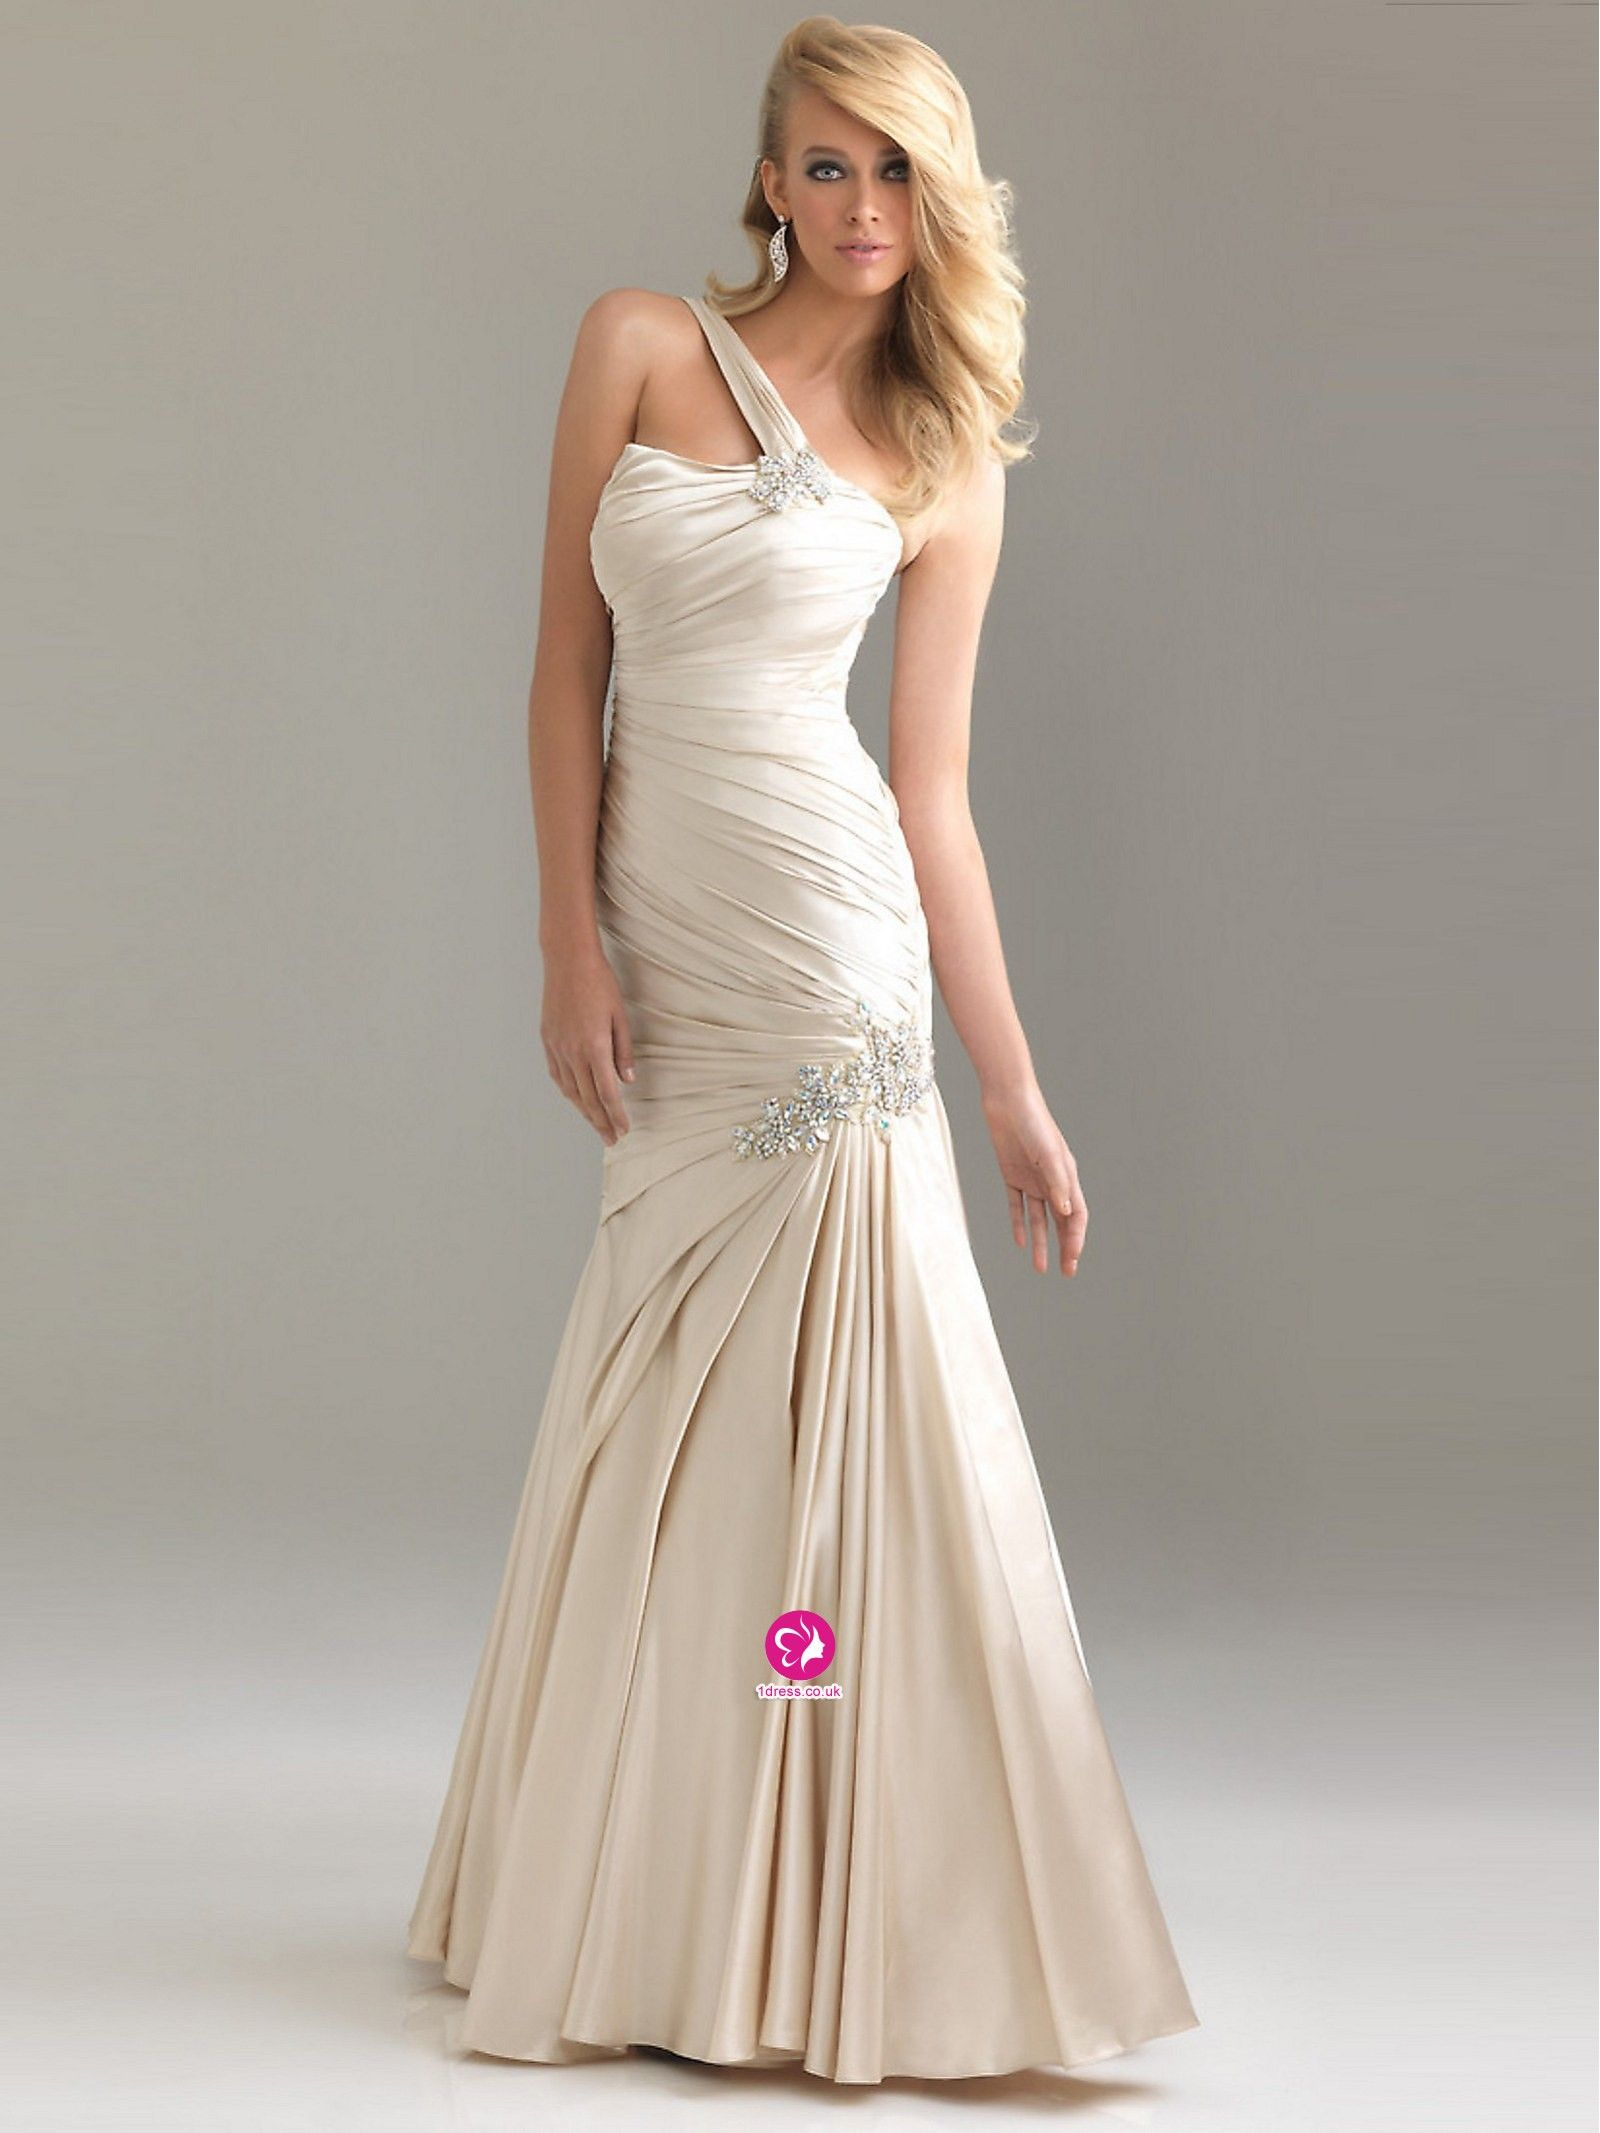 Evening dresses and prom dresses uk